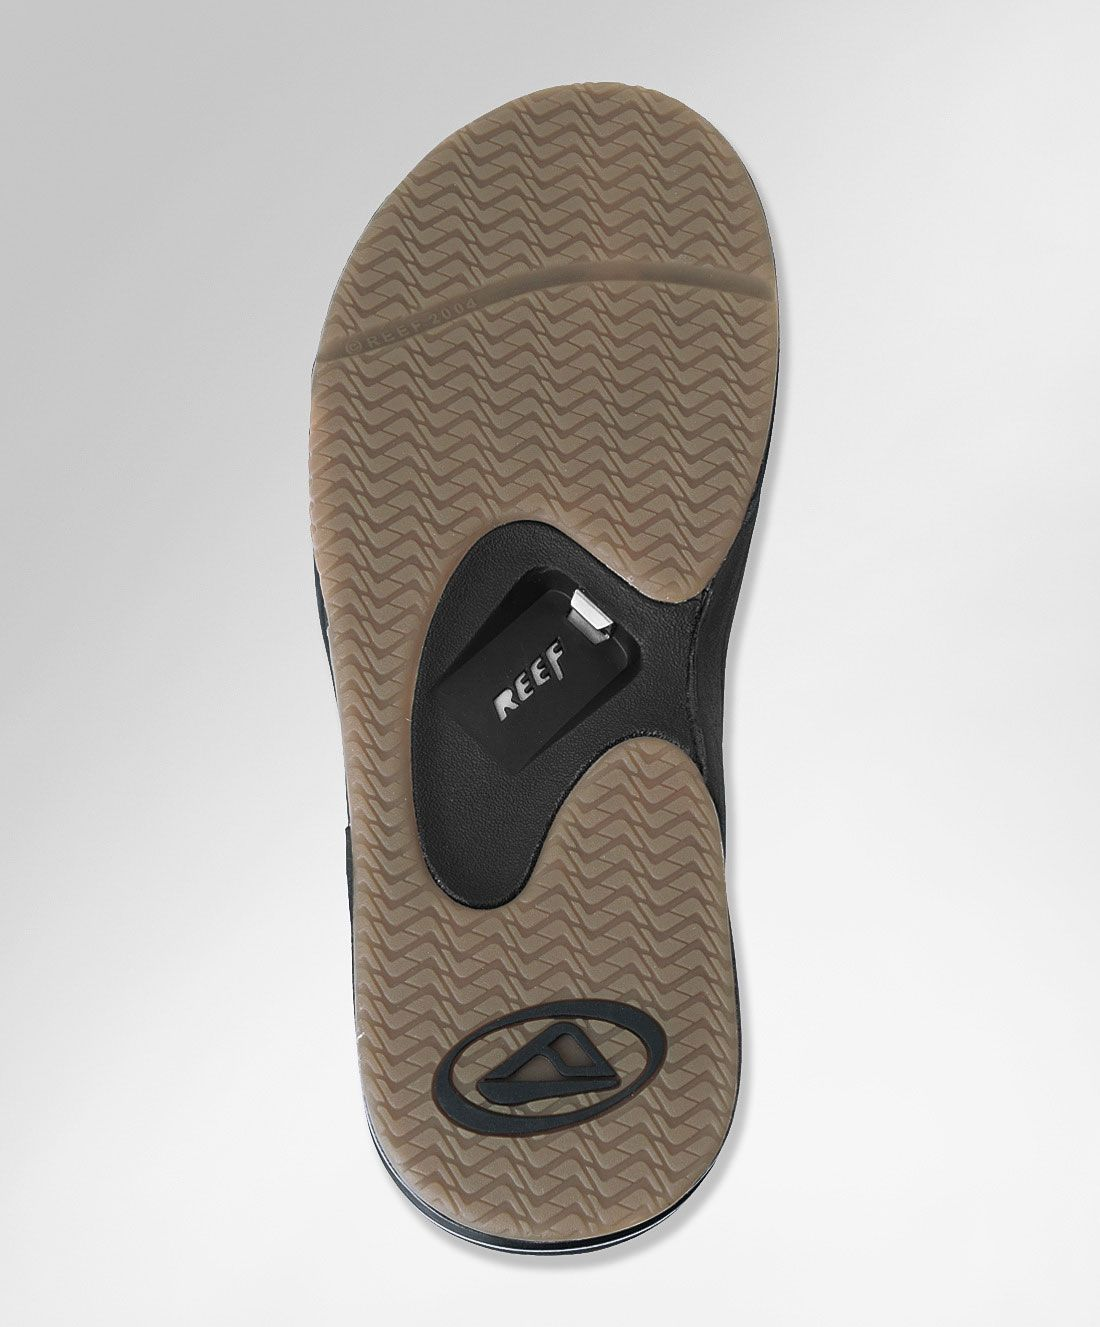 a36364a871e6 Flip Flop Bottle Opener Makes You The MacGyver Of The Beach